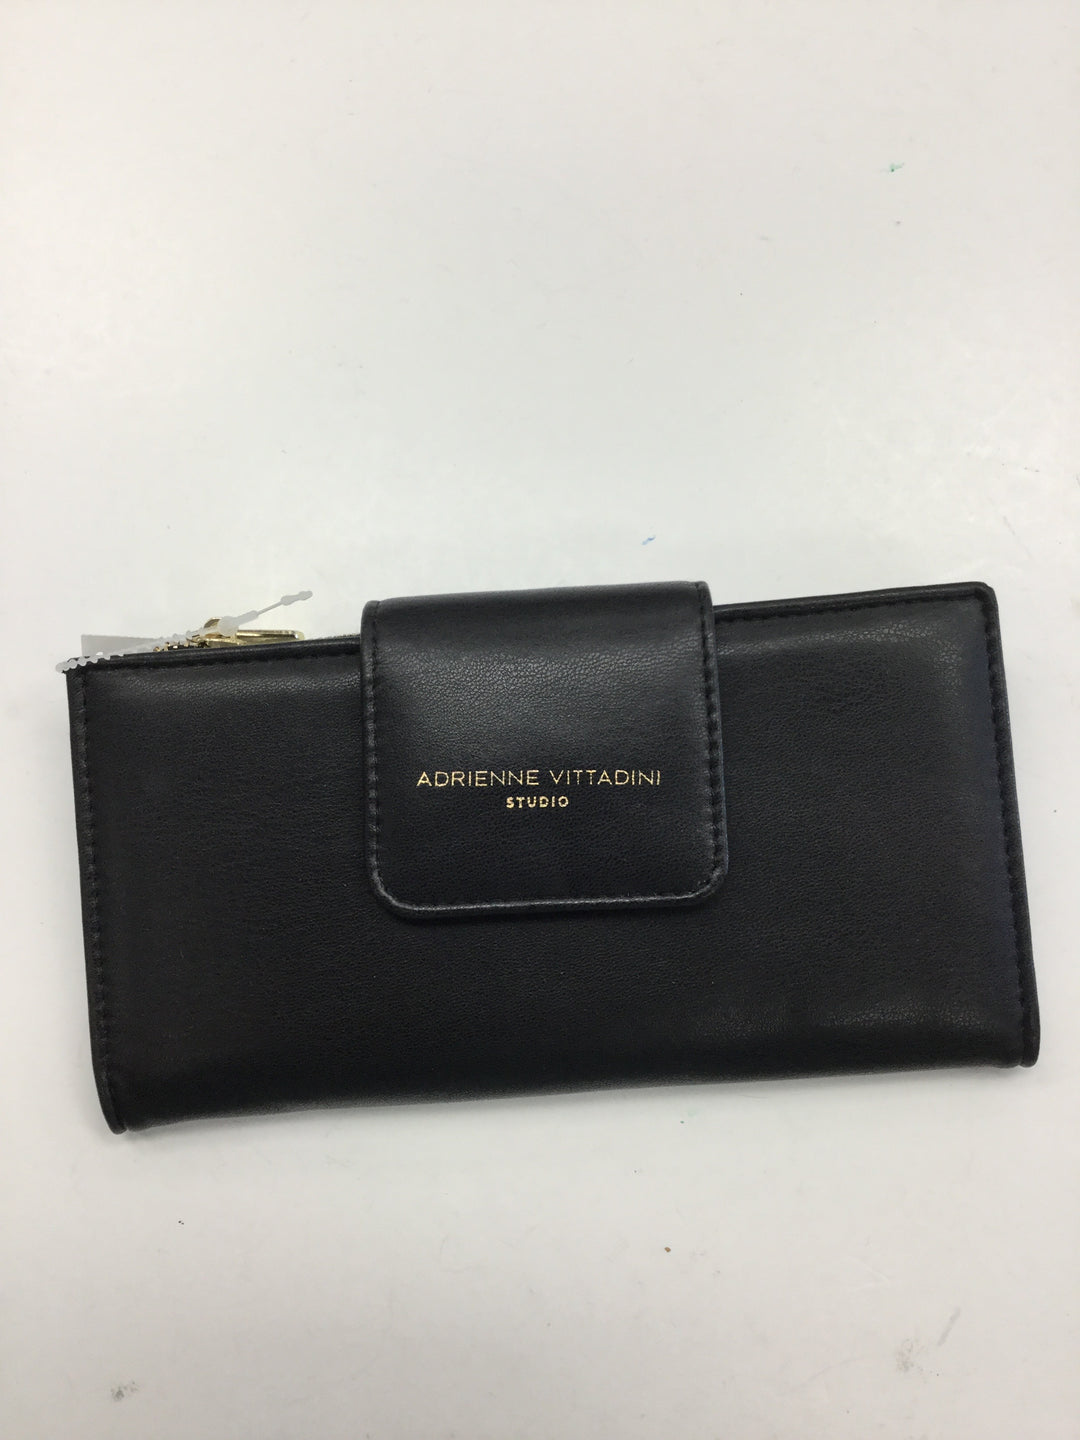 Primary Photo - BRAND: ADRIENNE VITTADINI <BR>STYLE: WALLET <BR>COLOR: BLACK <BR>SIZE: MEDIUM <BR>SKU: 155-15599-232530